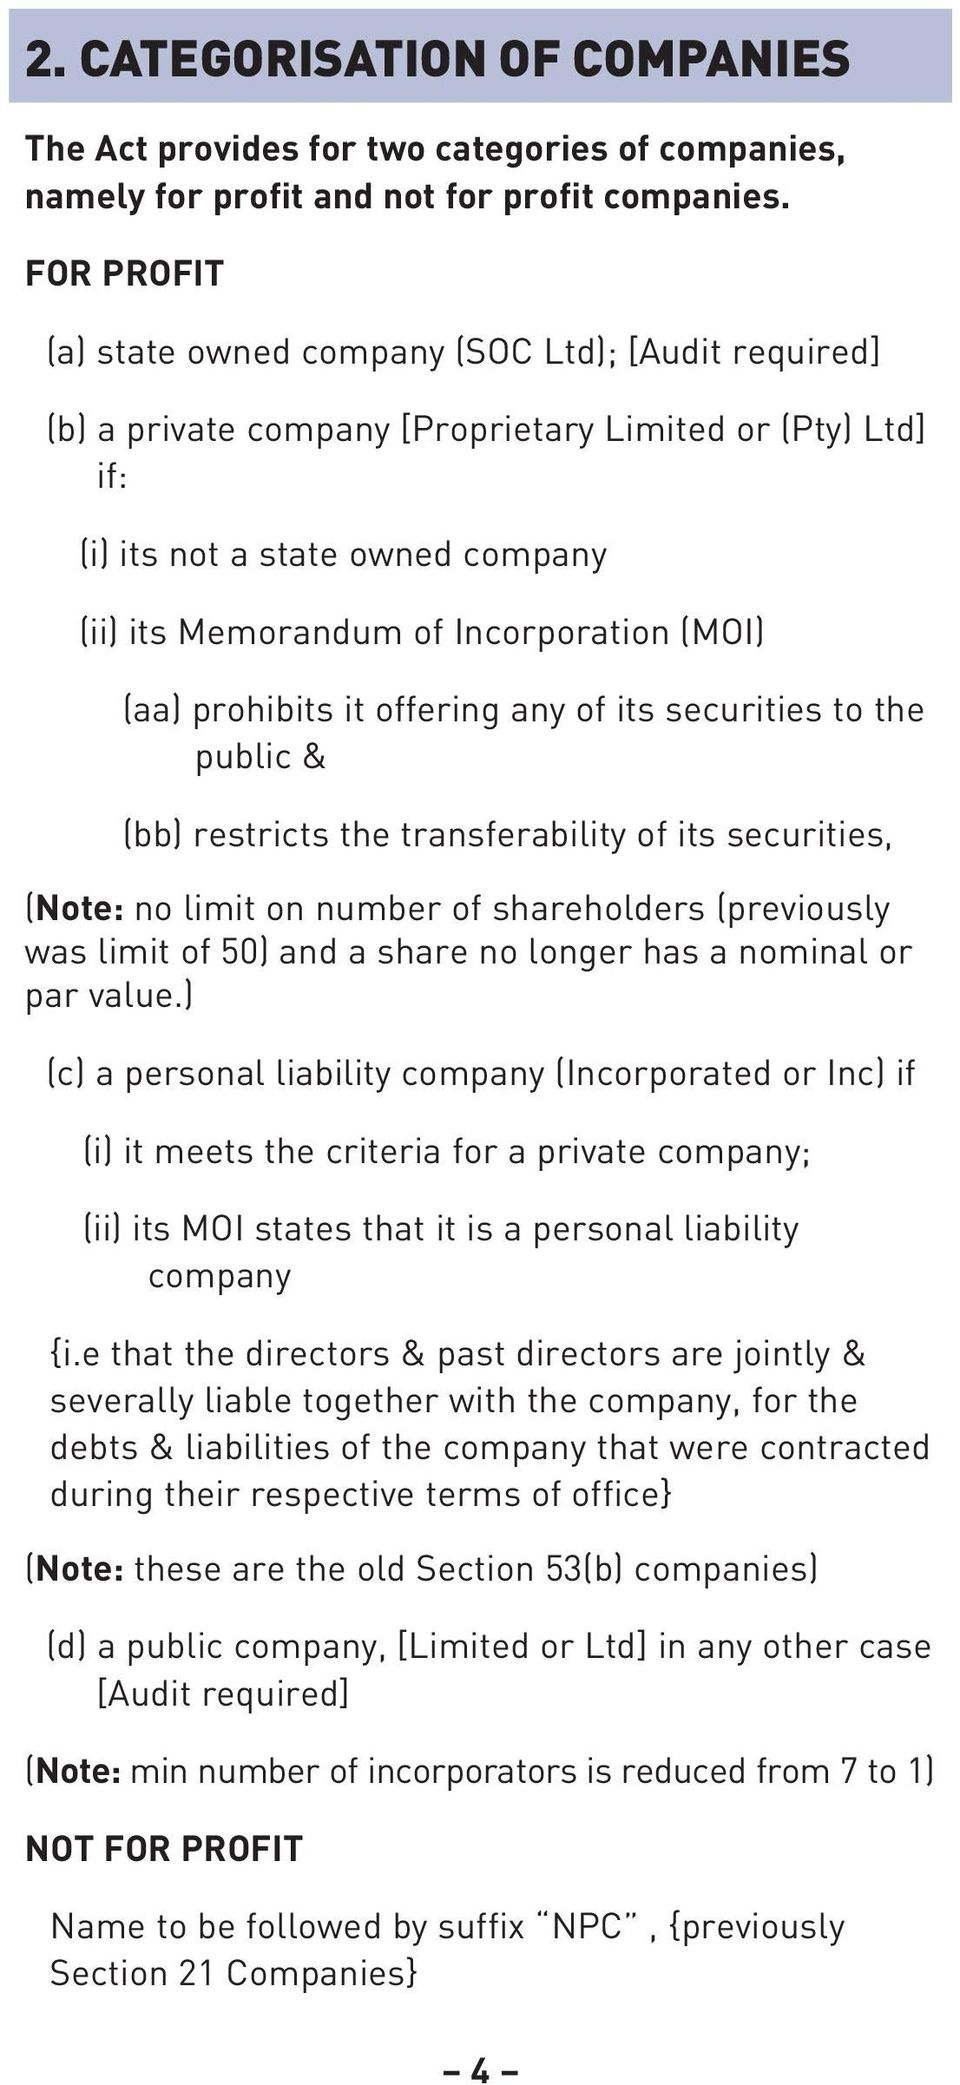 (MOI) (aa) prohibits it offering any of its securities to the public & (bb) restricts the transferability of its securities, (Note: no limit on number of shareholders (previously was limit of 50) and